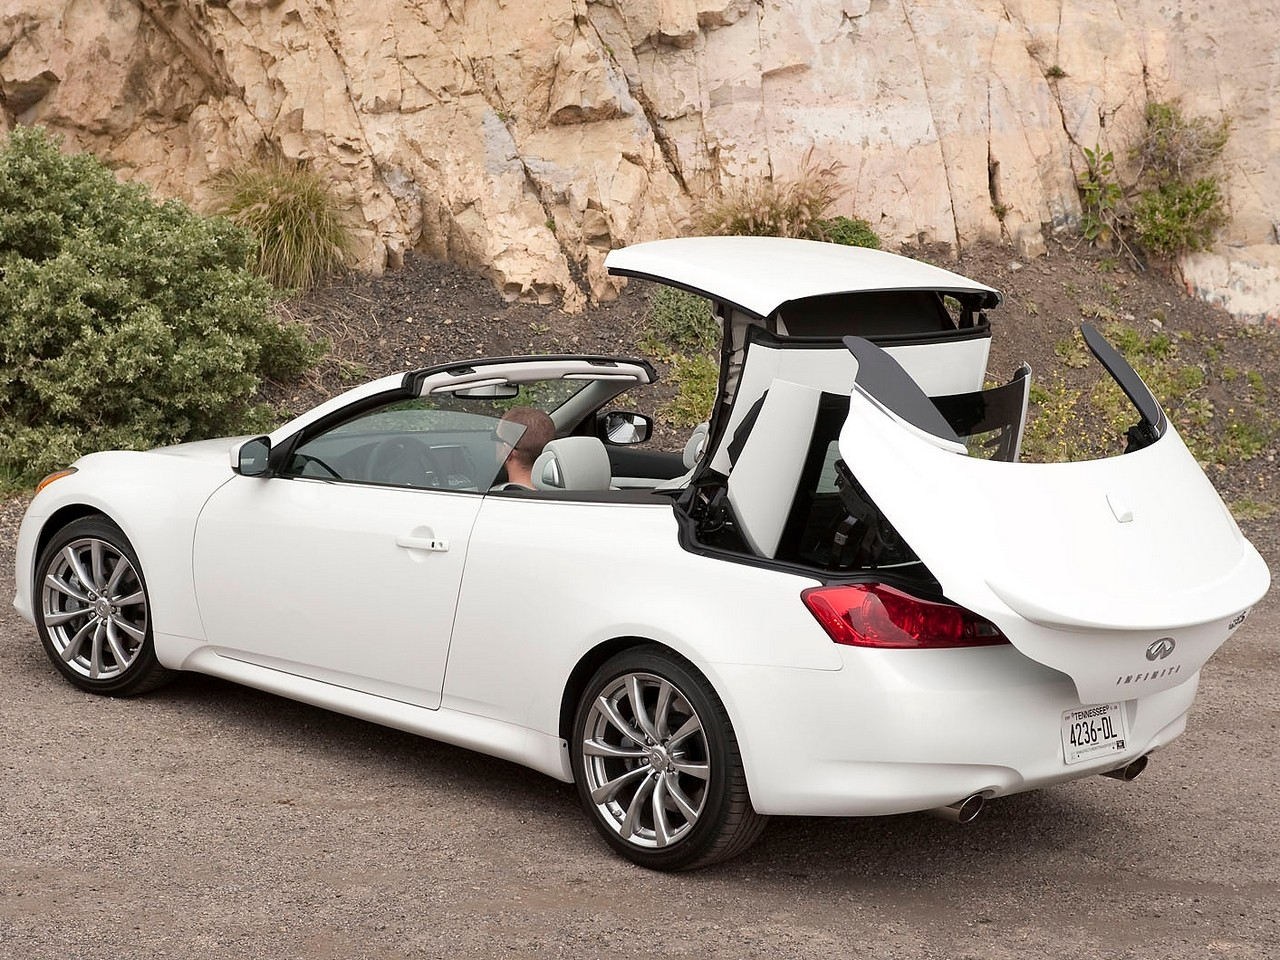 infiniti g37 convertible by -#main